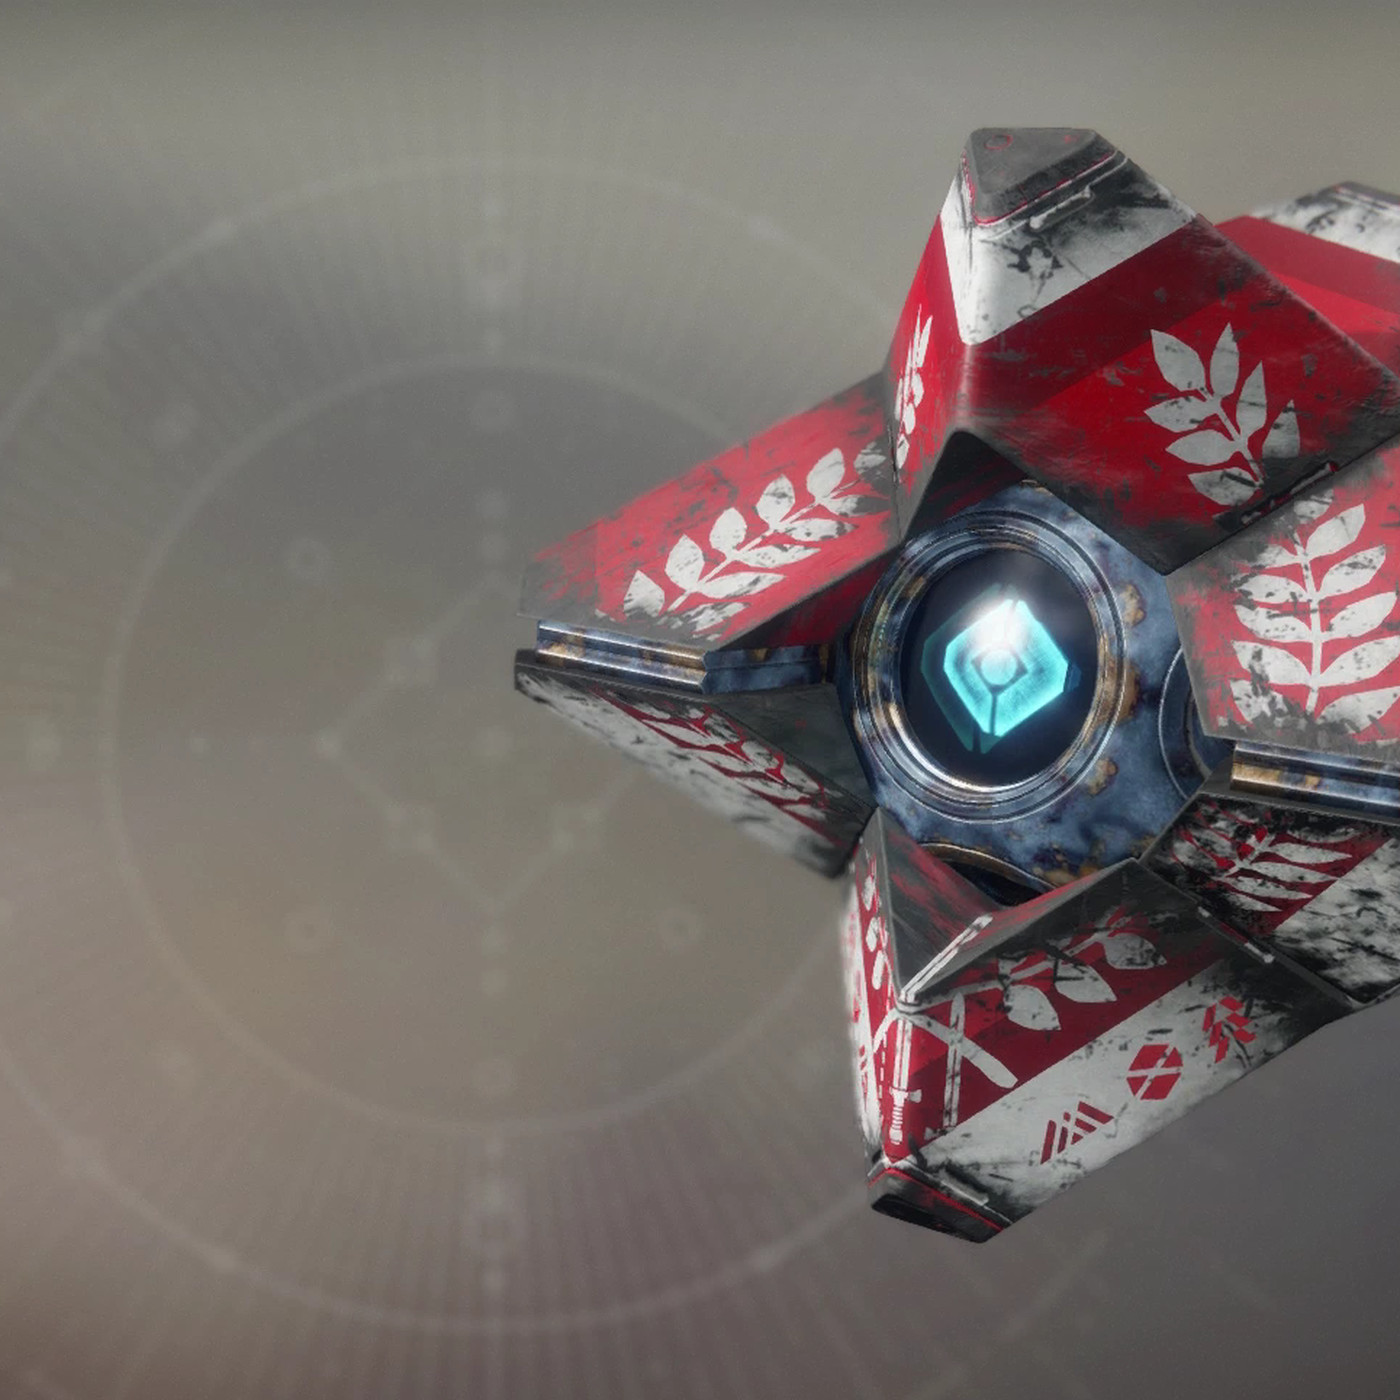 Destiny 2 guide: How to increase your Ghost's range to find